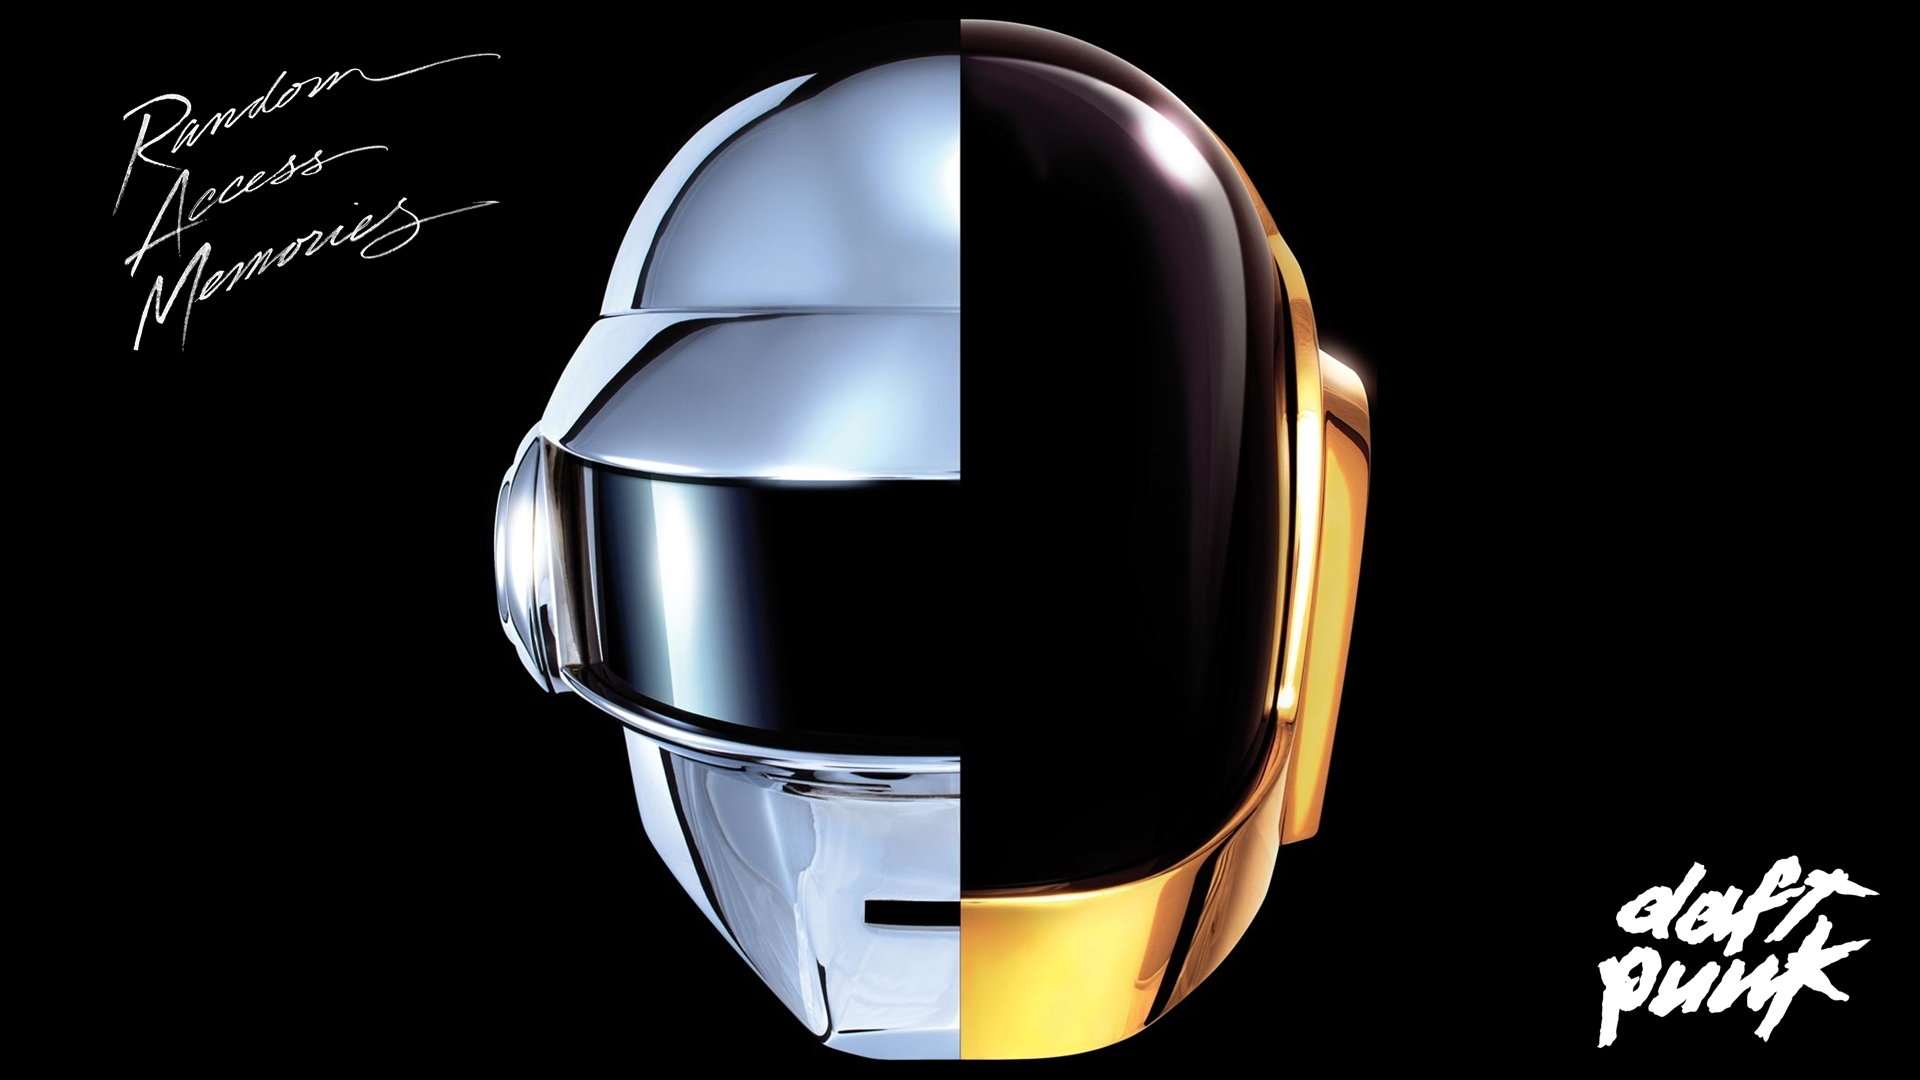 Daft Punk Wallpapers High Quality Download Free